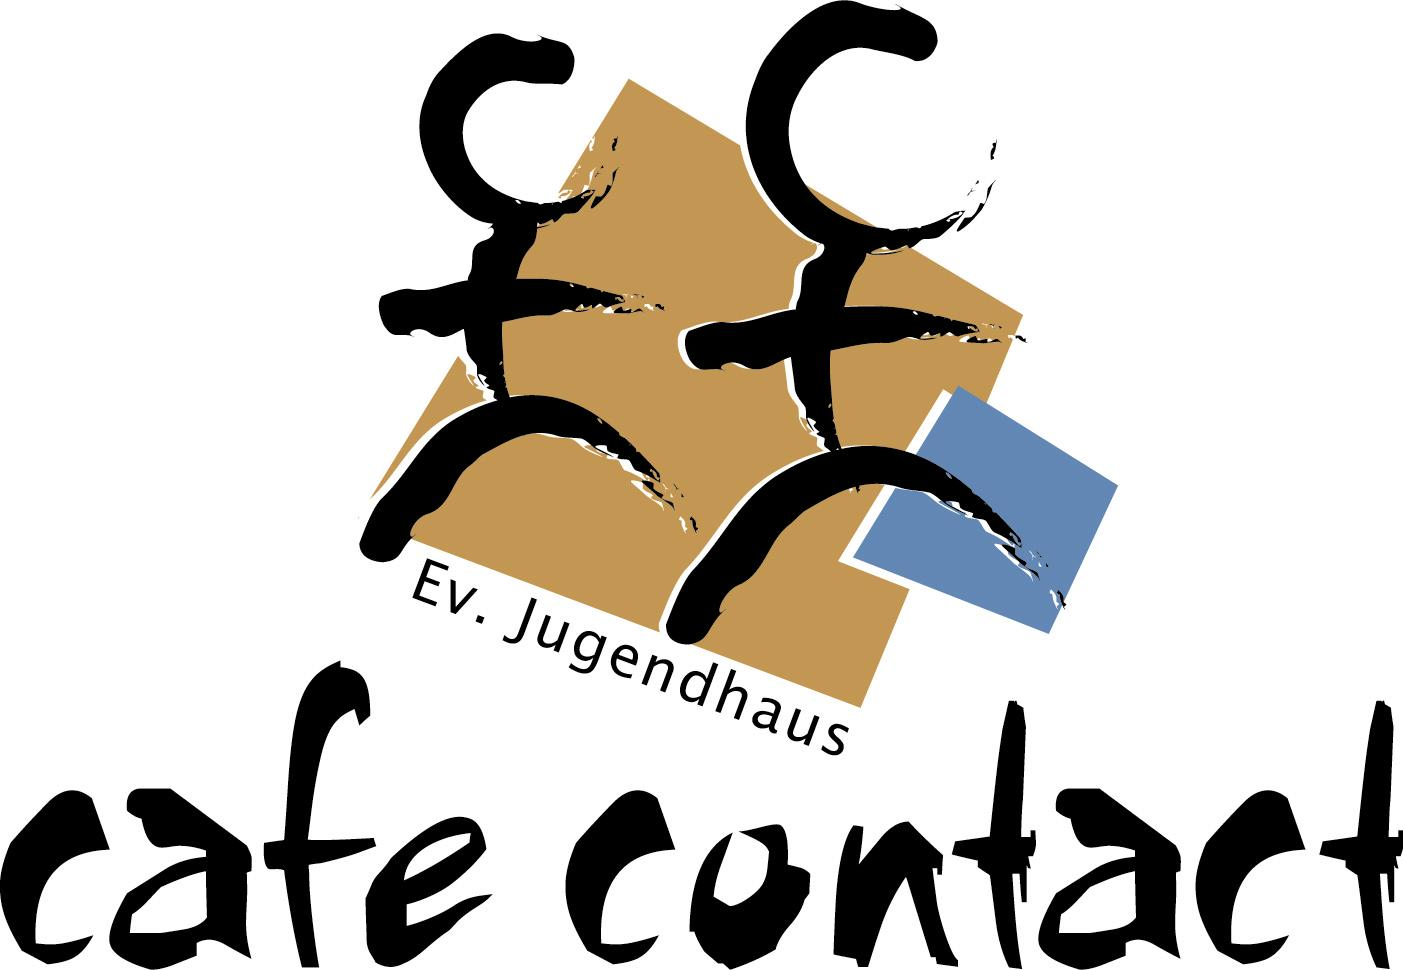 Logo des Jugendhauses Cafe Contact